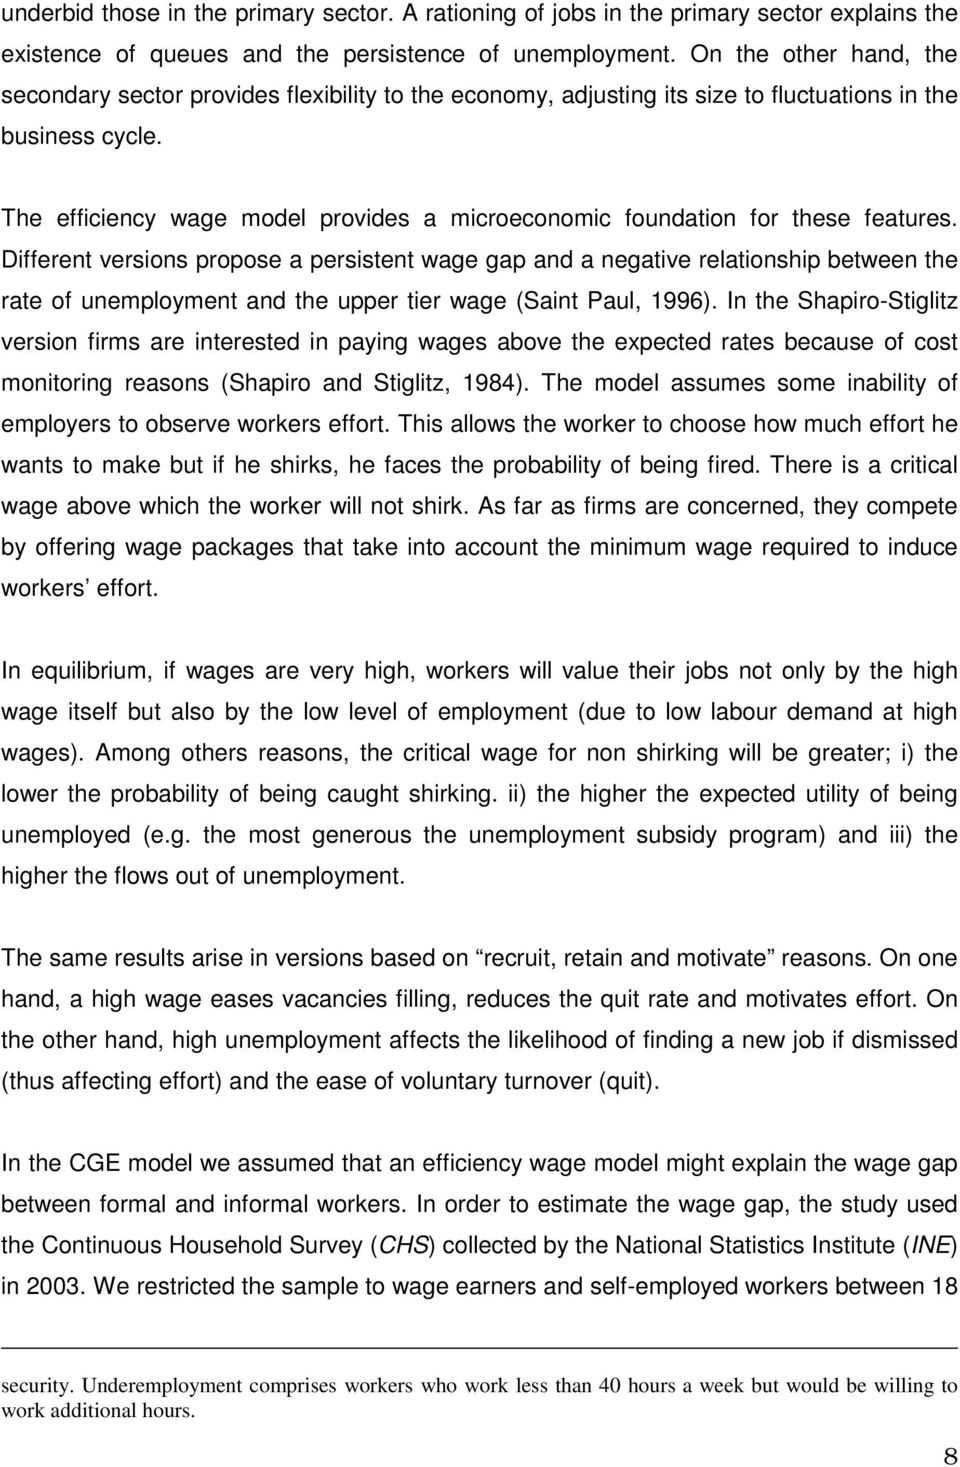 Dfferent versons propose a persstent wage gap and a negatve relatonshp between the rate of unemployment and the upper ter wage (Sant Paul, 1996).